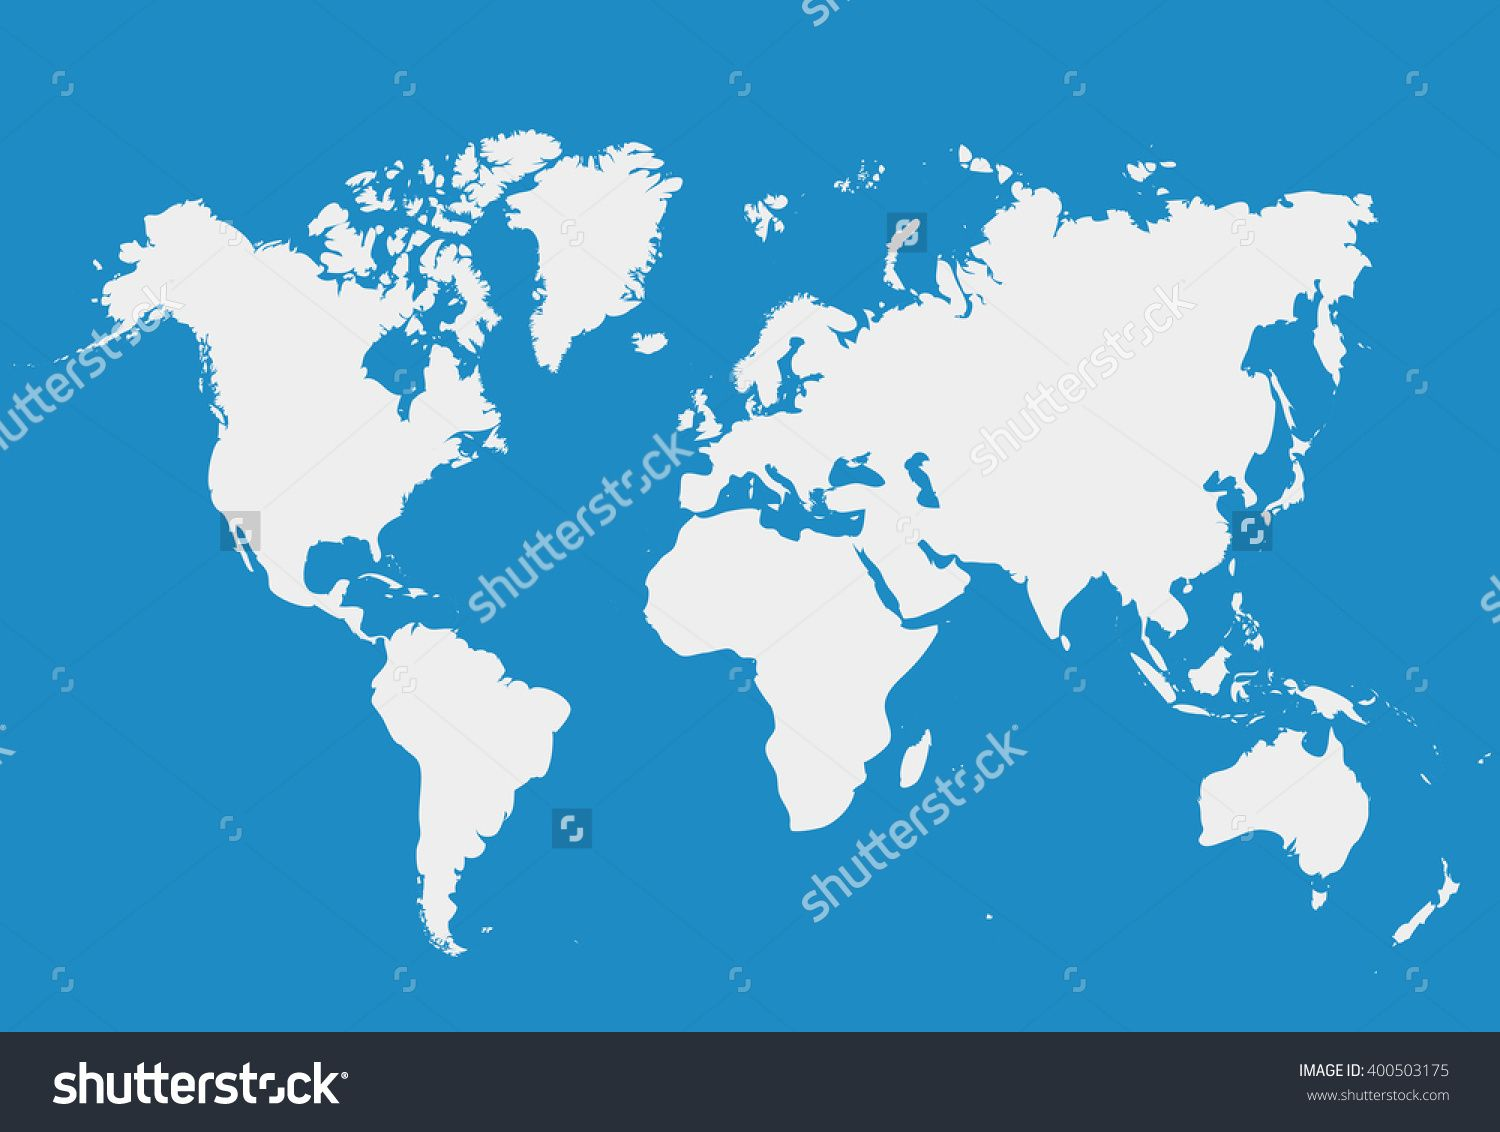 Blank white simillar world map isolated on blue background worldmap blank white simillar world map isolated on blue background worldmap vector template for website gumiabroncs Images